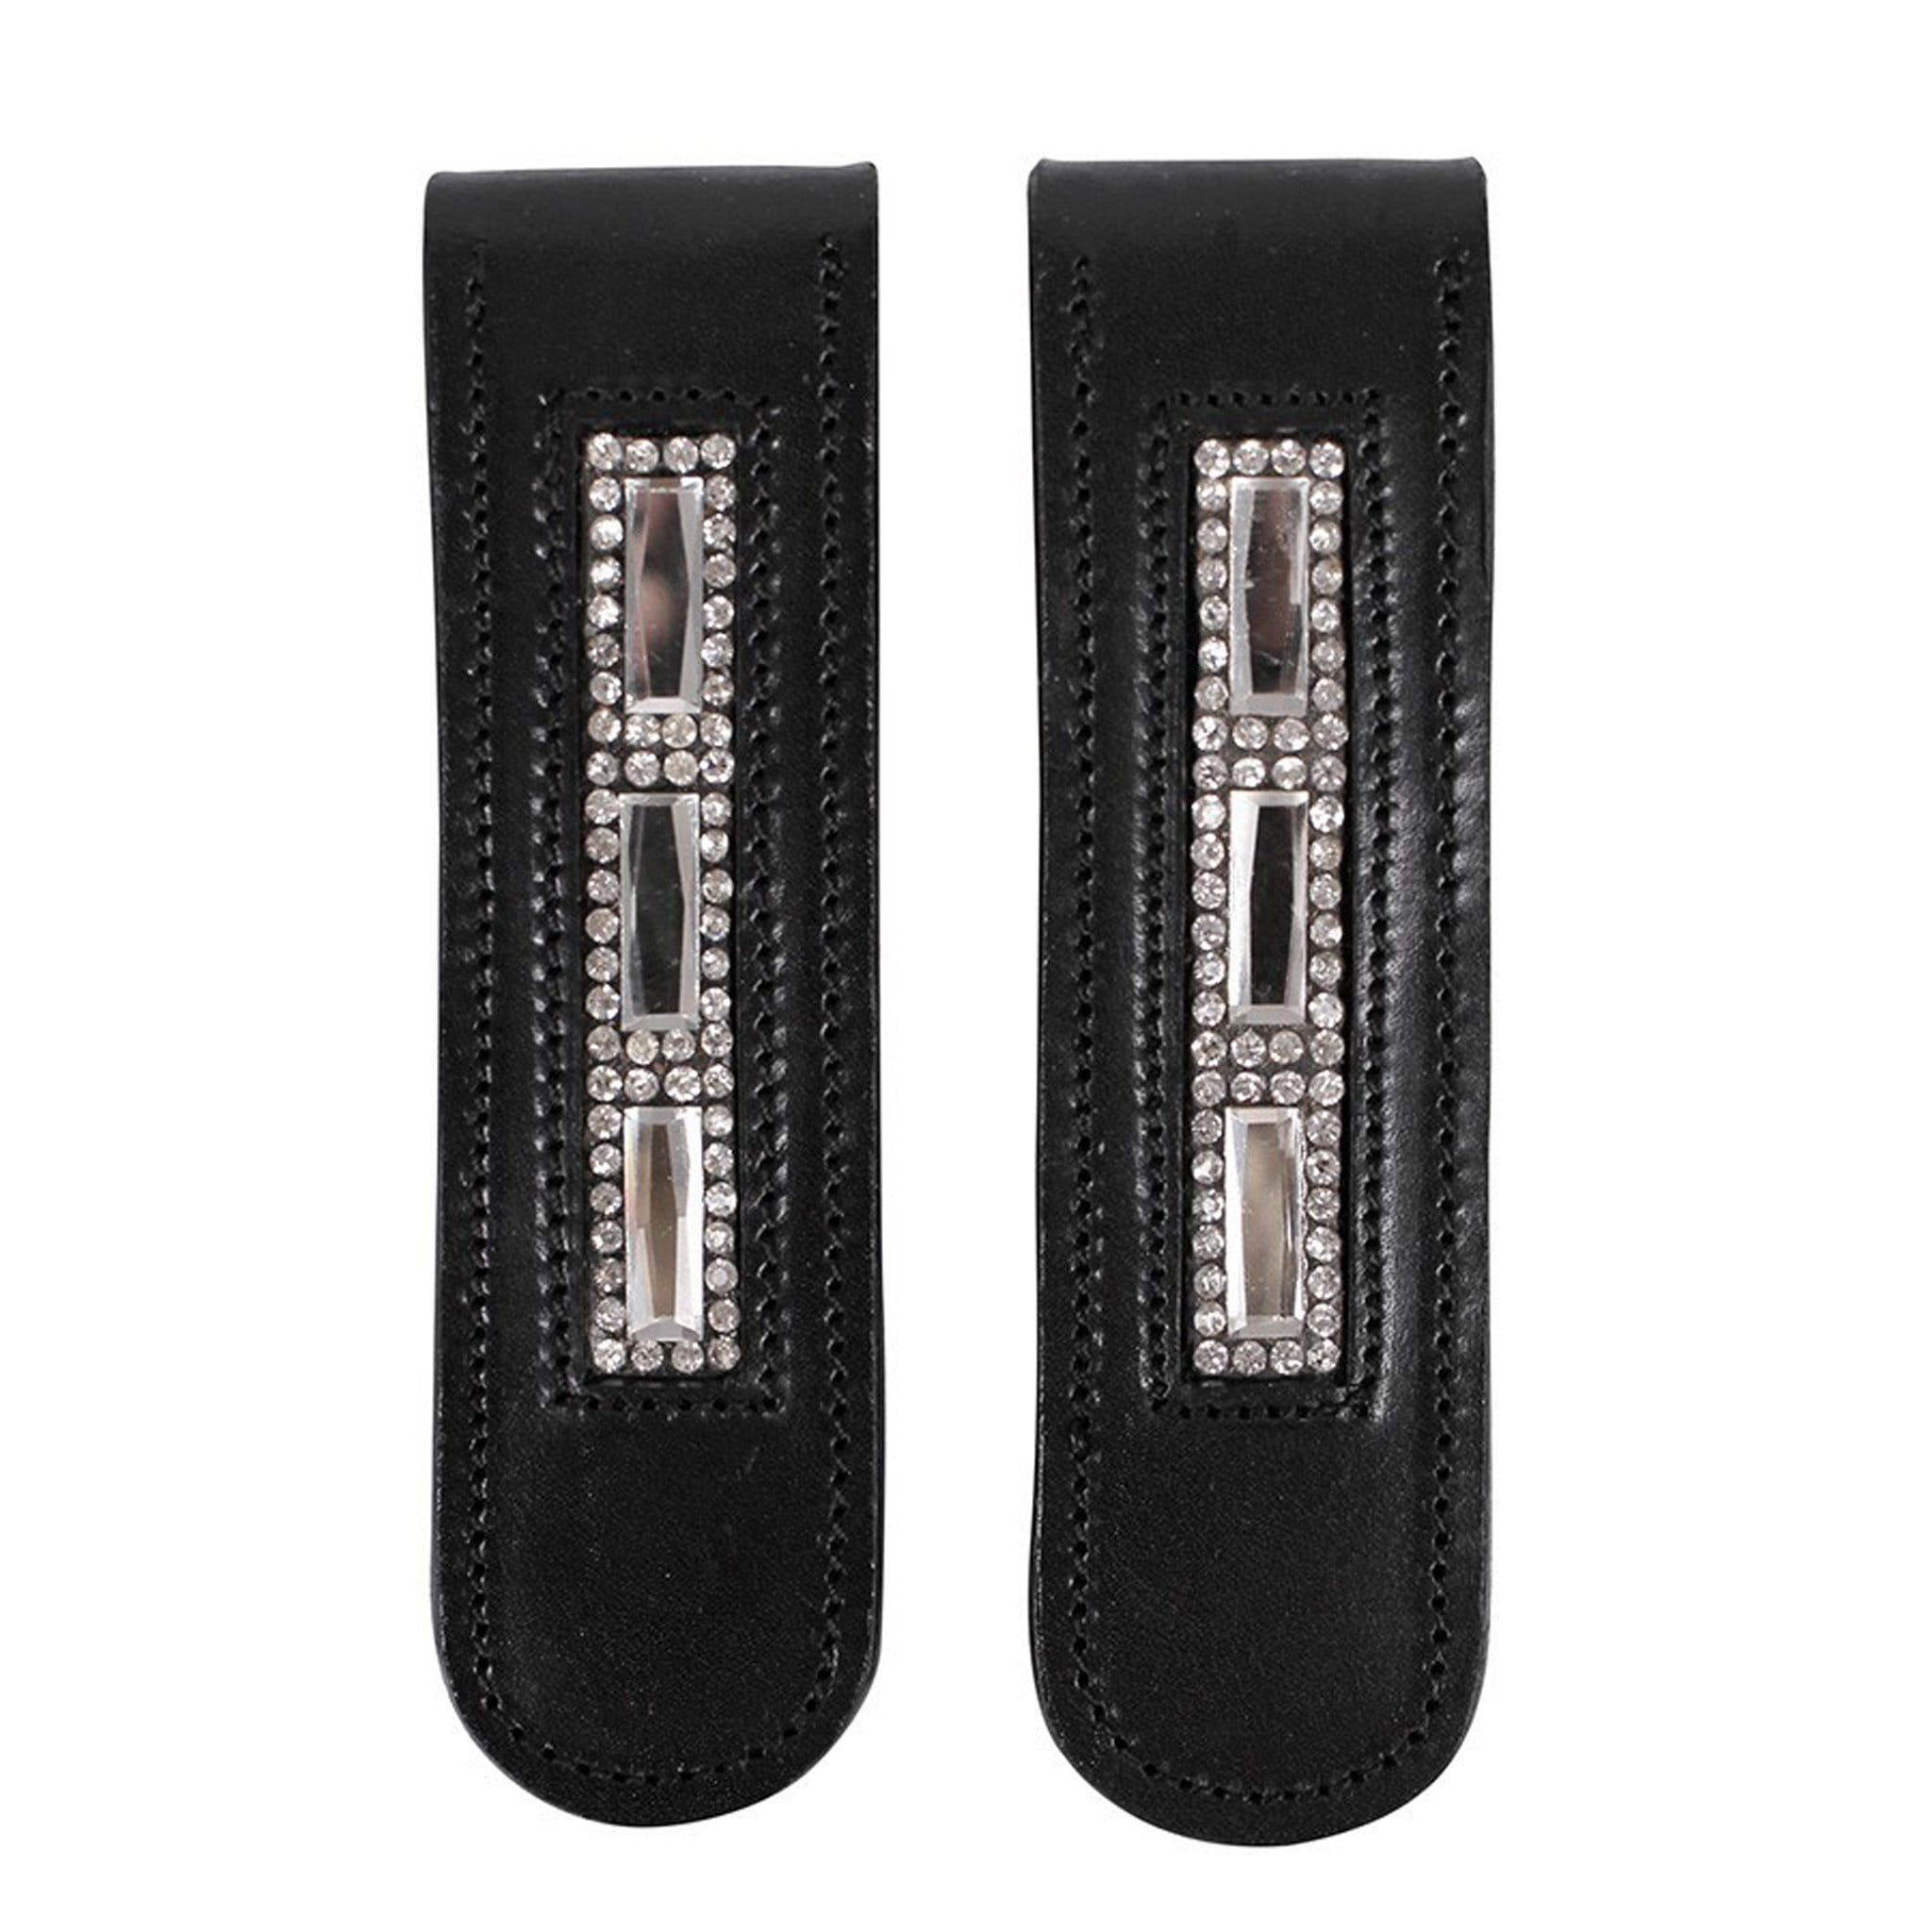 QHP Taylor Boot Clip 7126 Black and Silver Pair